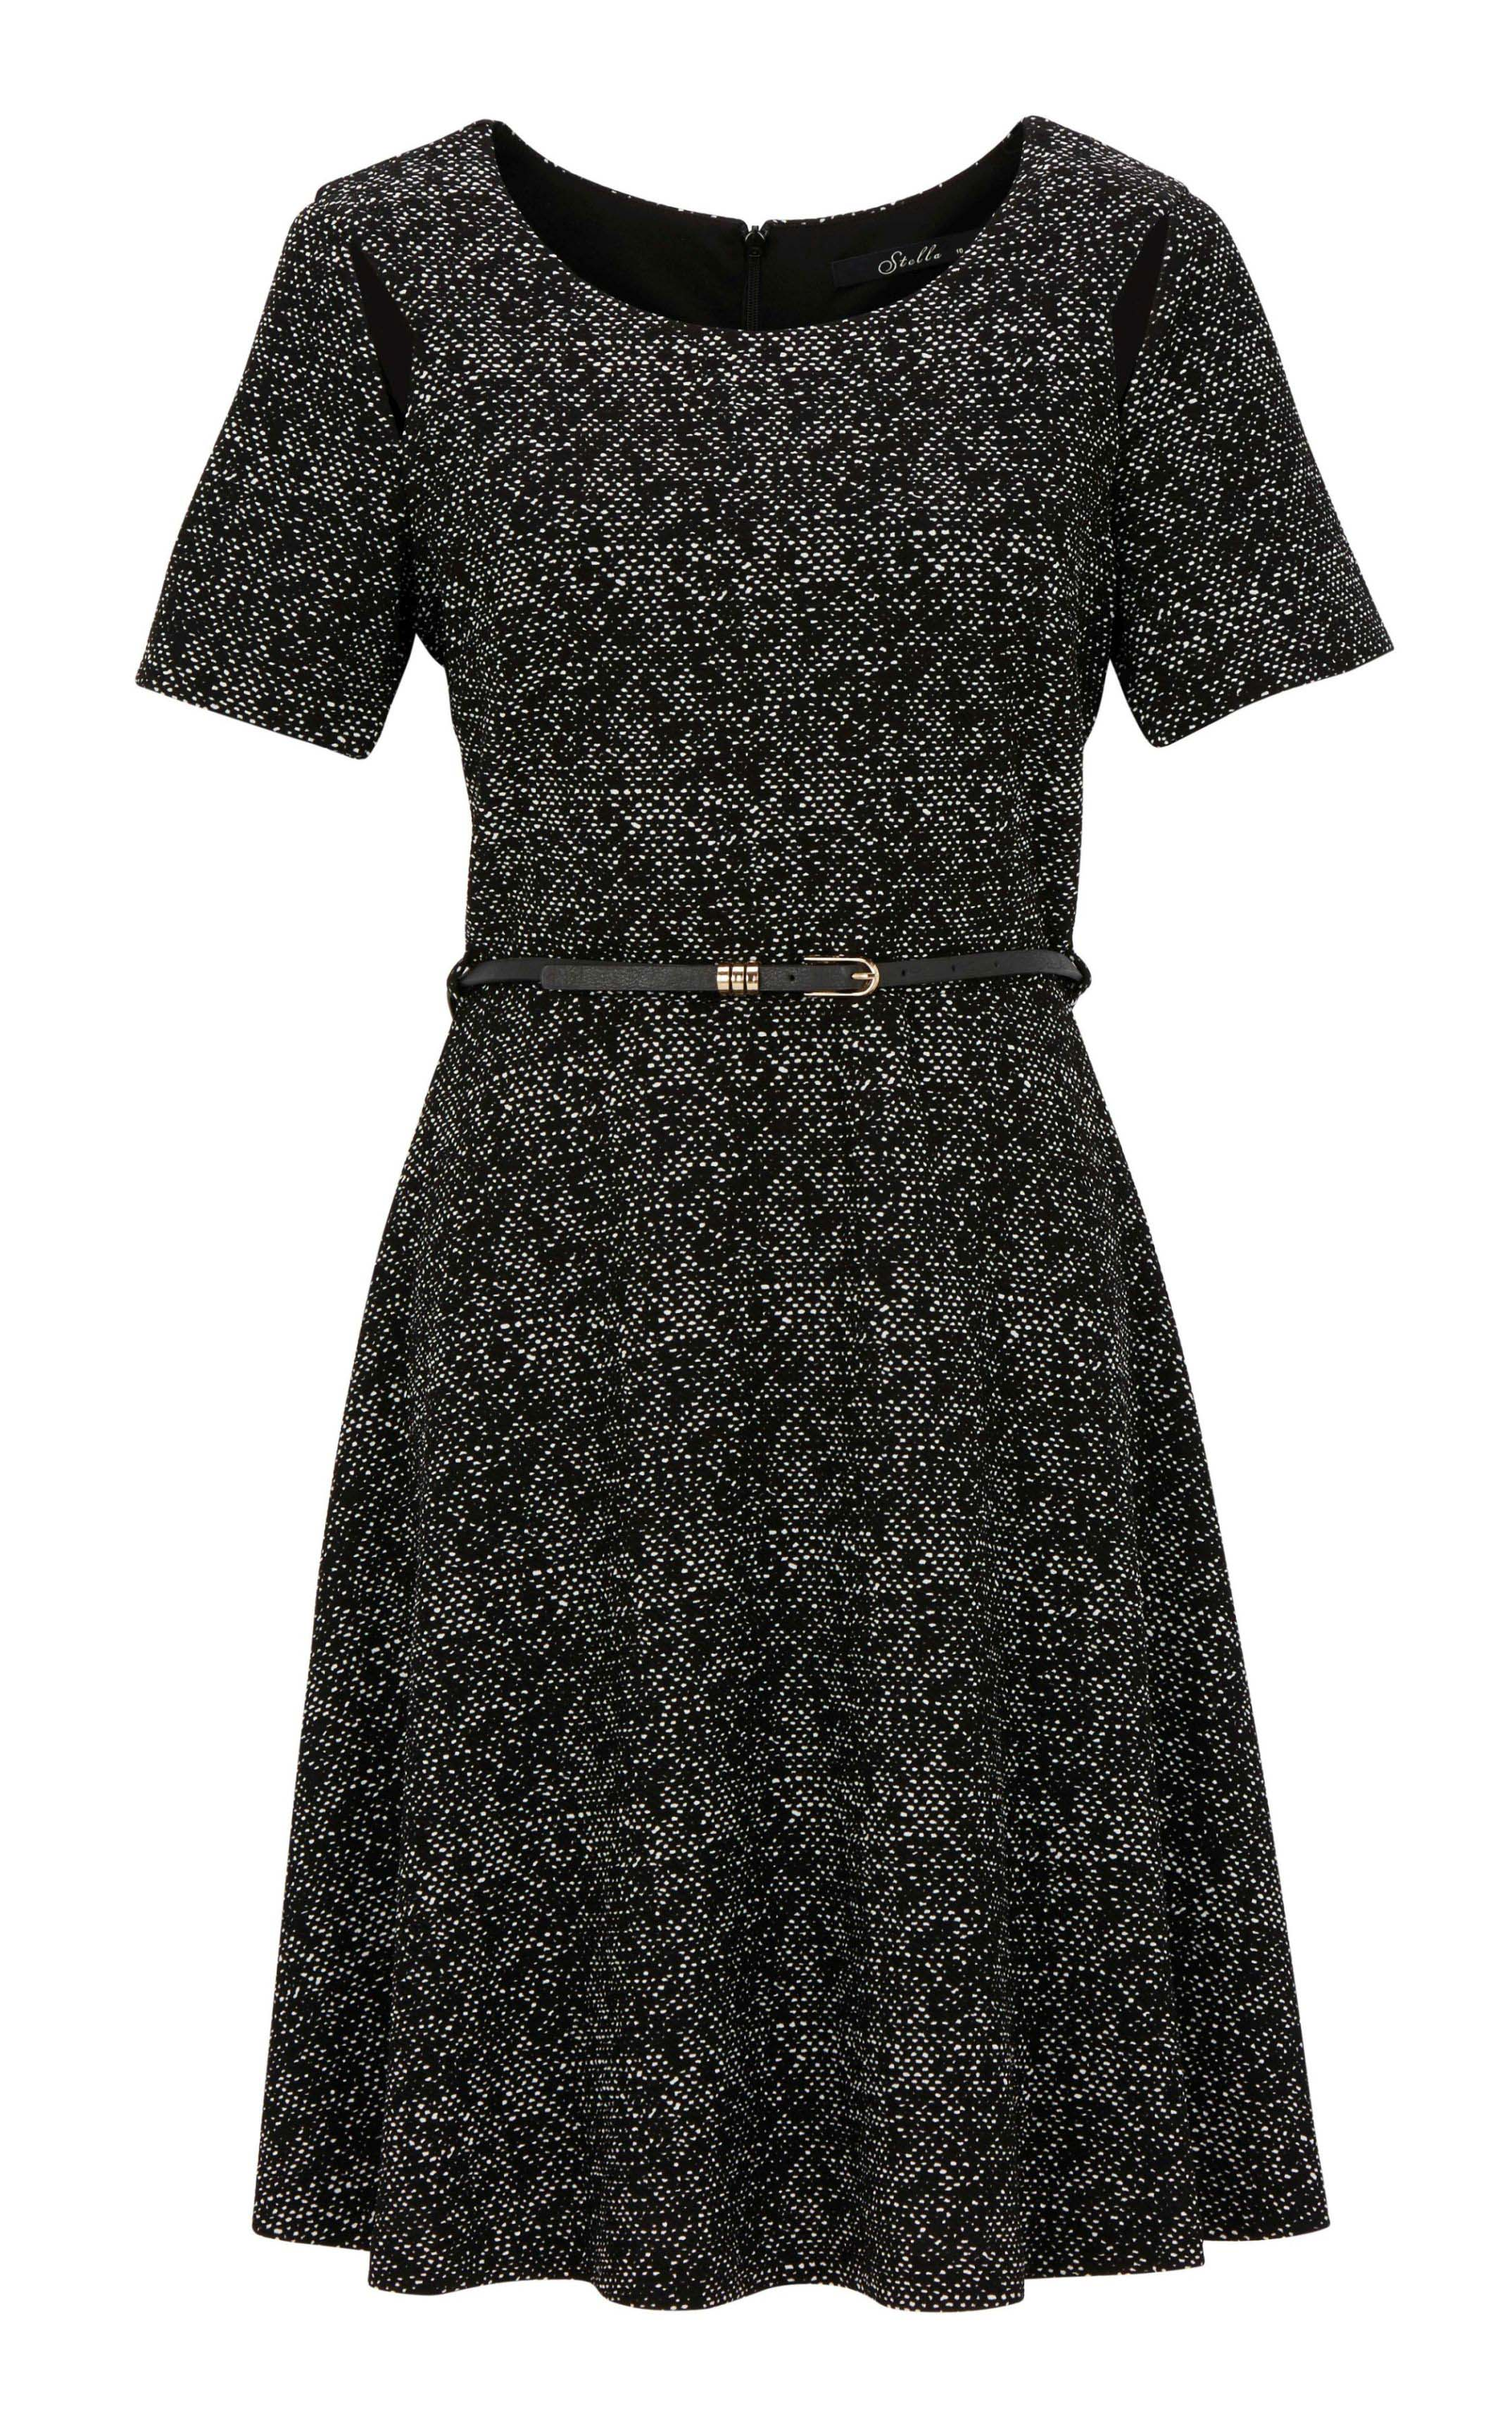 6090914 Stella Carrie Dress $139.99 March 15 2016